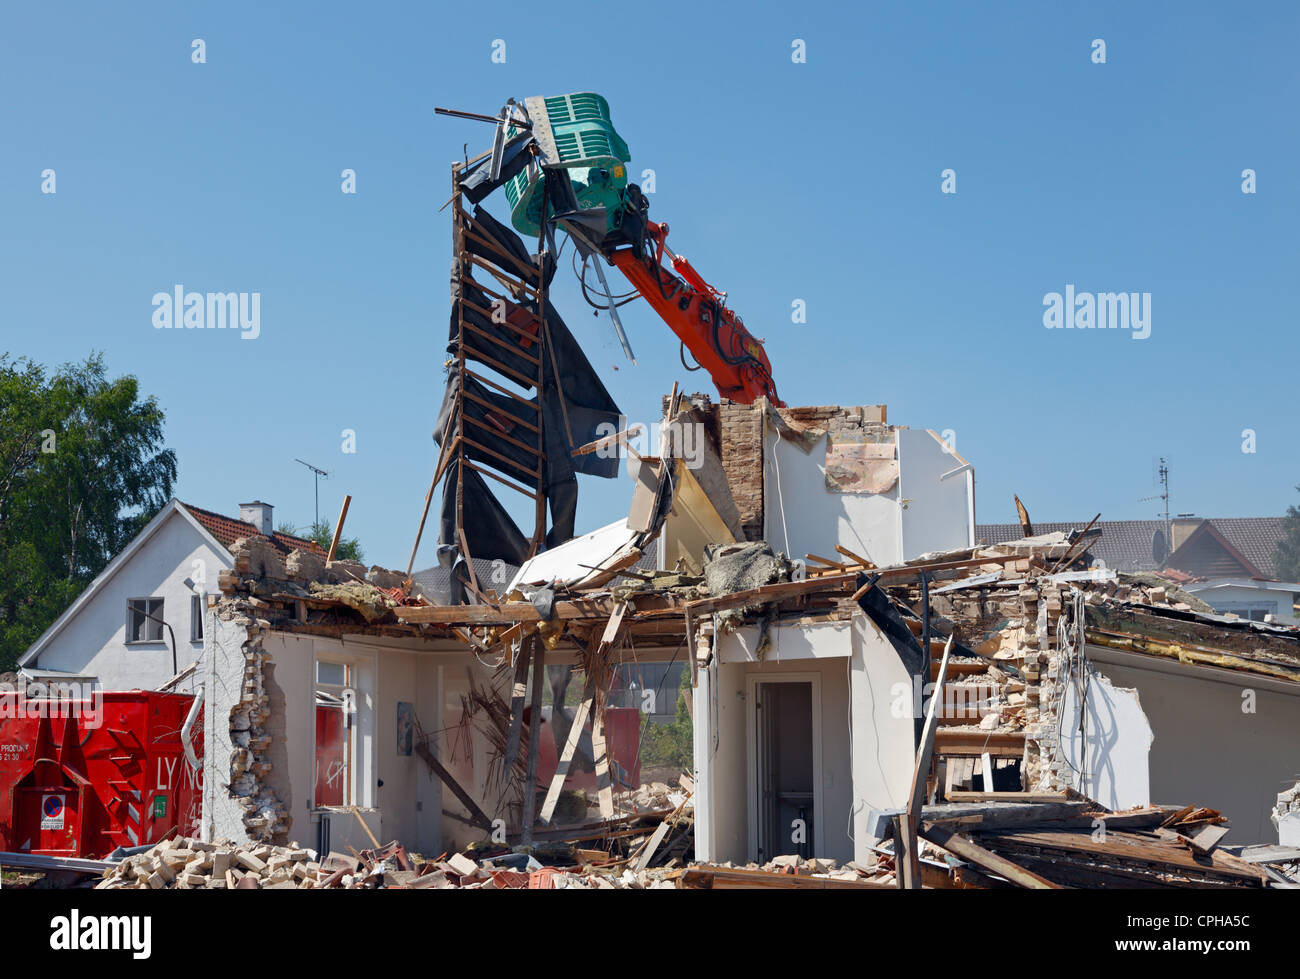 A house is demolished by use of a dredger to make space for a new supermarket, Denmark - Stock Image